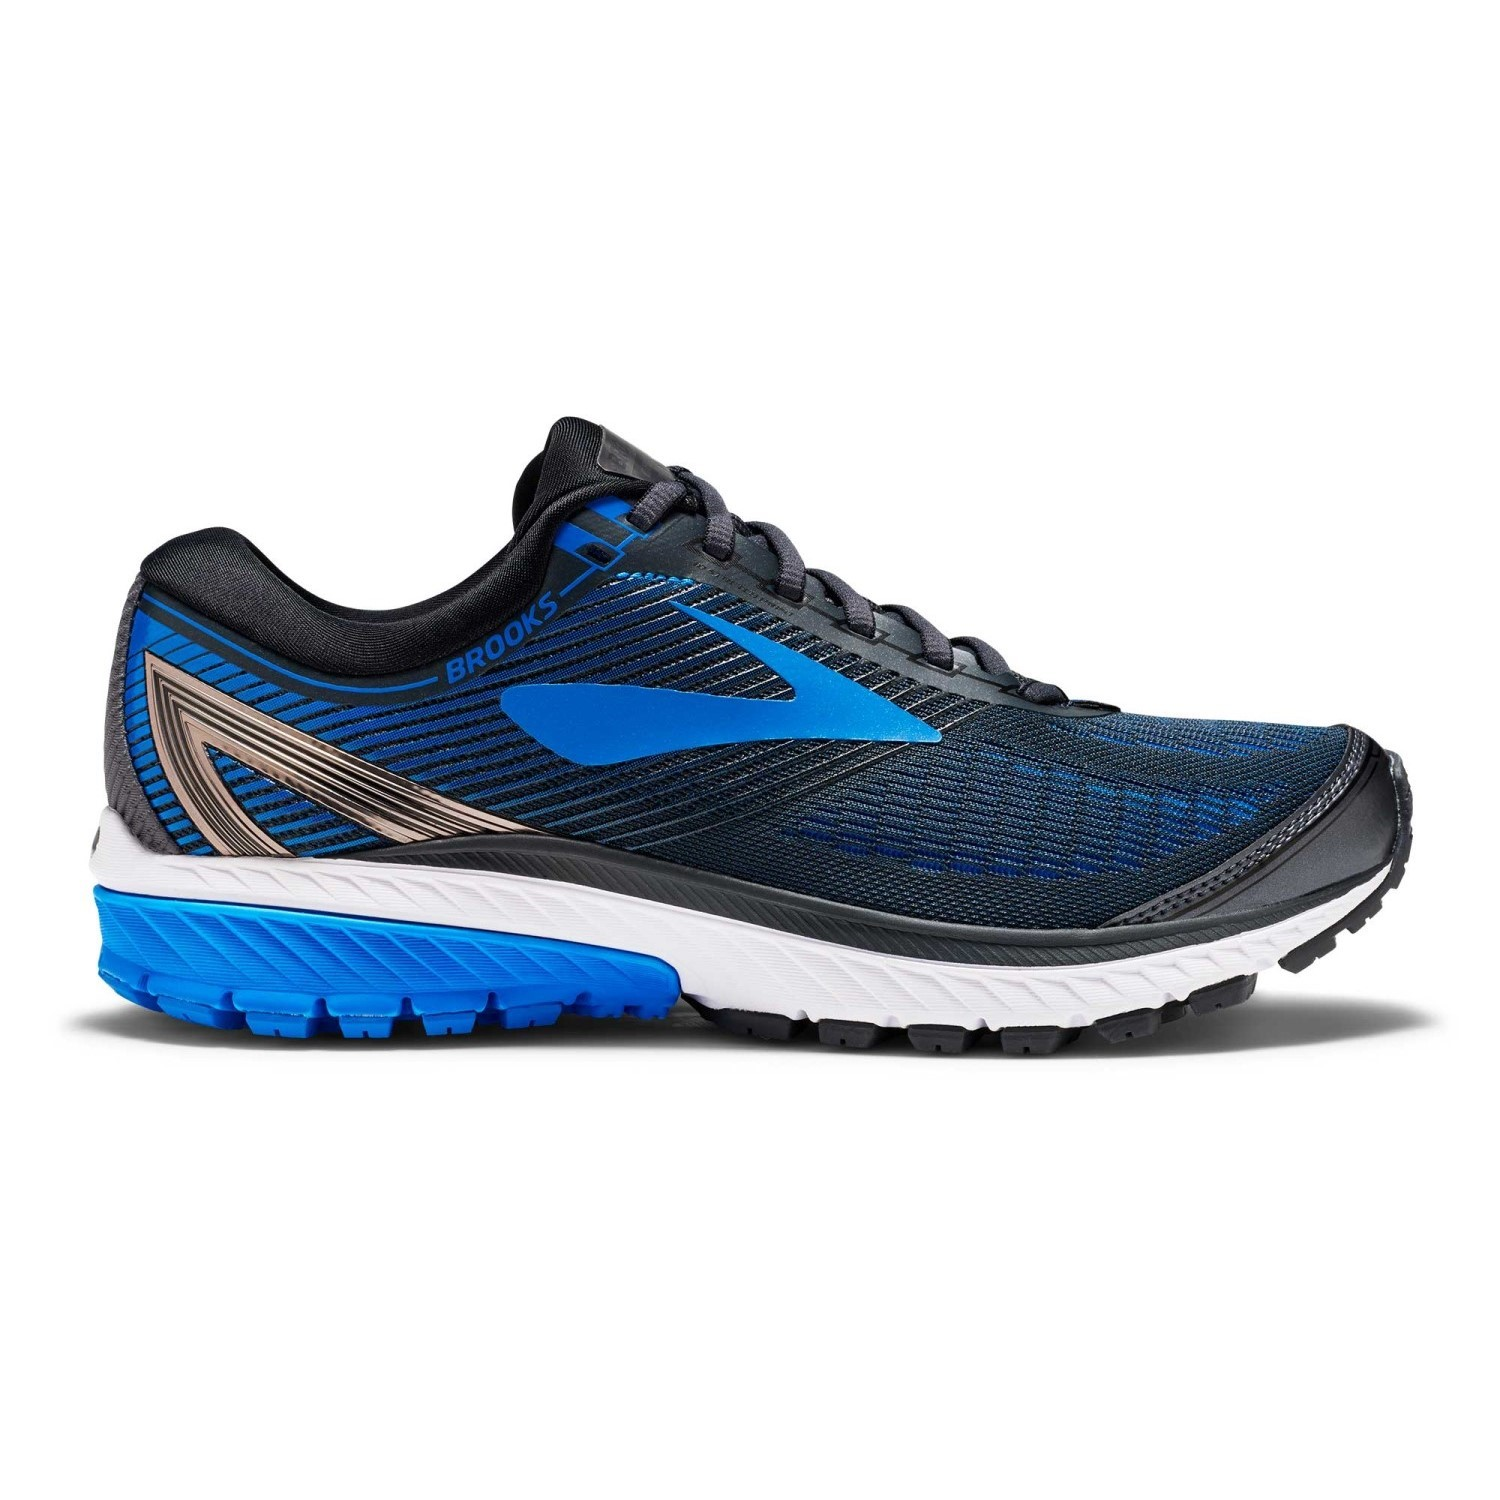 89d4e2f54acbf Brooks Ghost 10 - Mens Running Shoes - Metallic Charcoal Brooks Blue ...